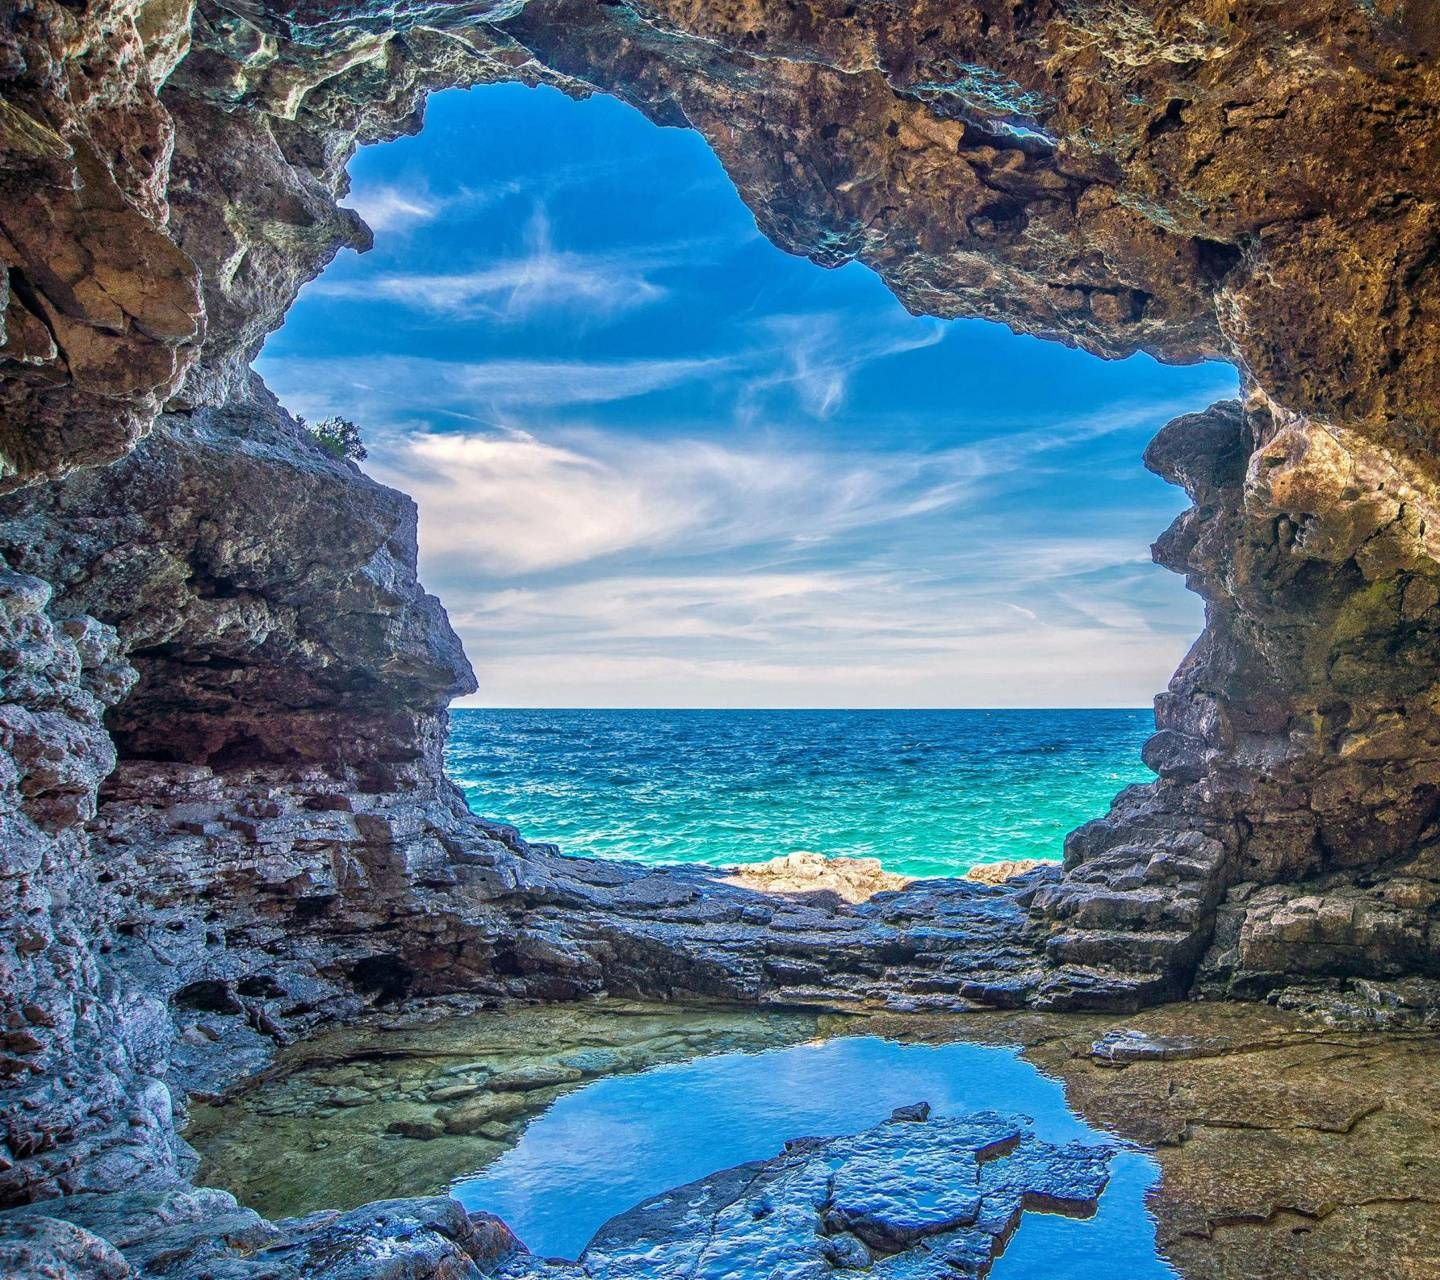 Download Sea Cave wallpaper by darcoolio 5d Free on